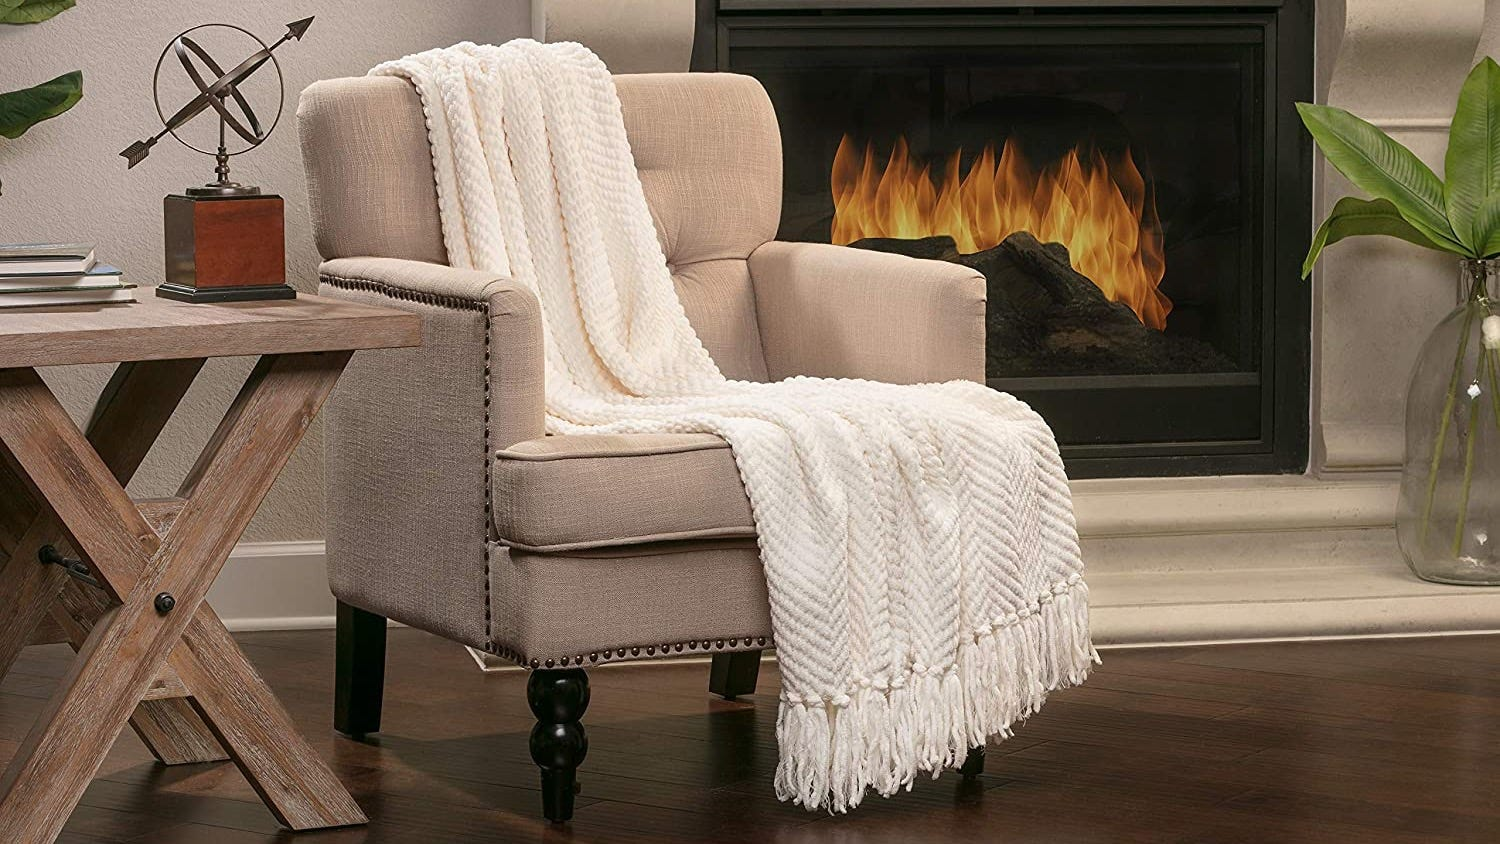 A white Chanasya blanket draped over the back of a chair in front of a fireplace.